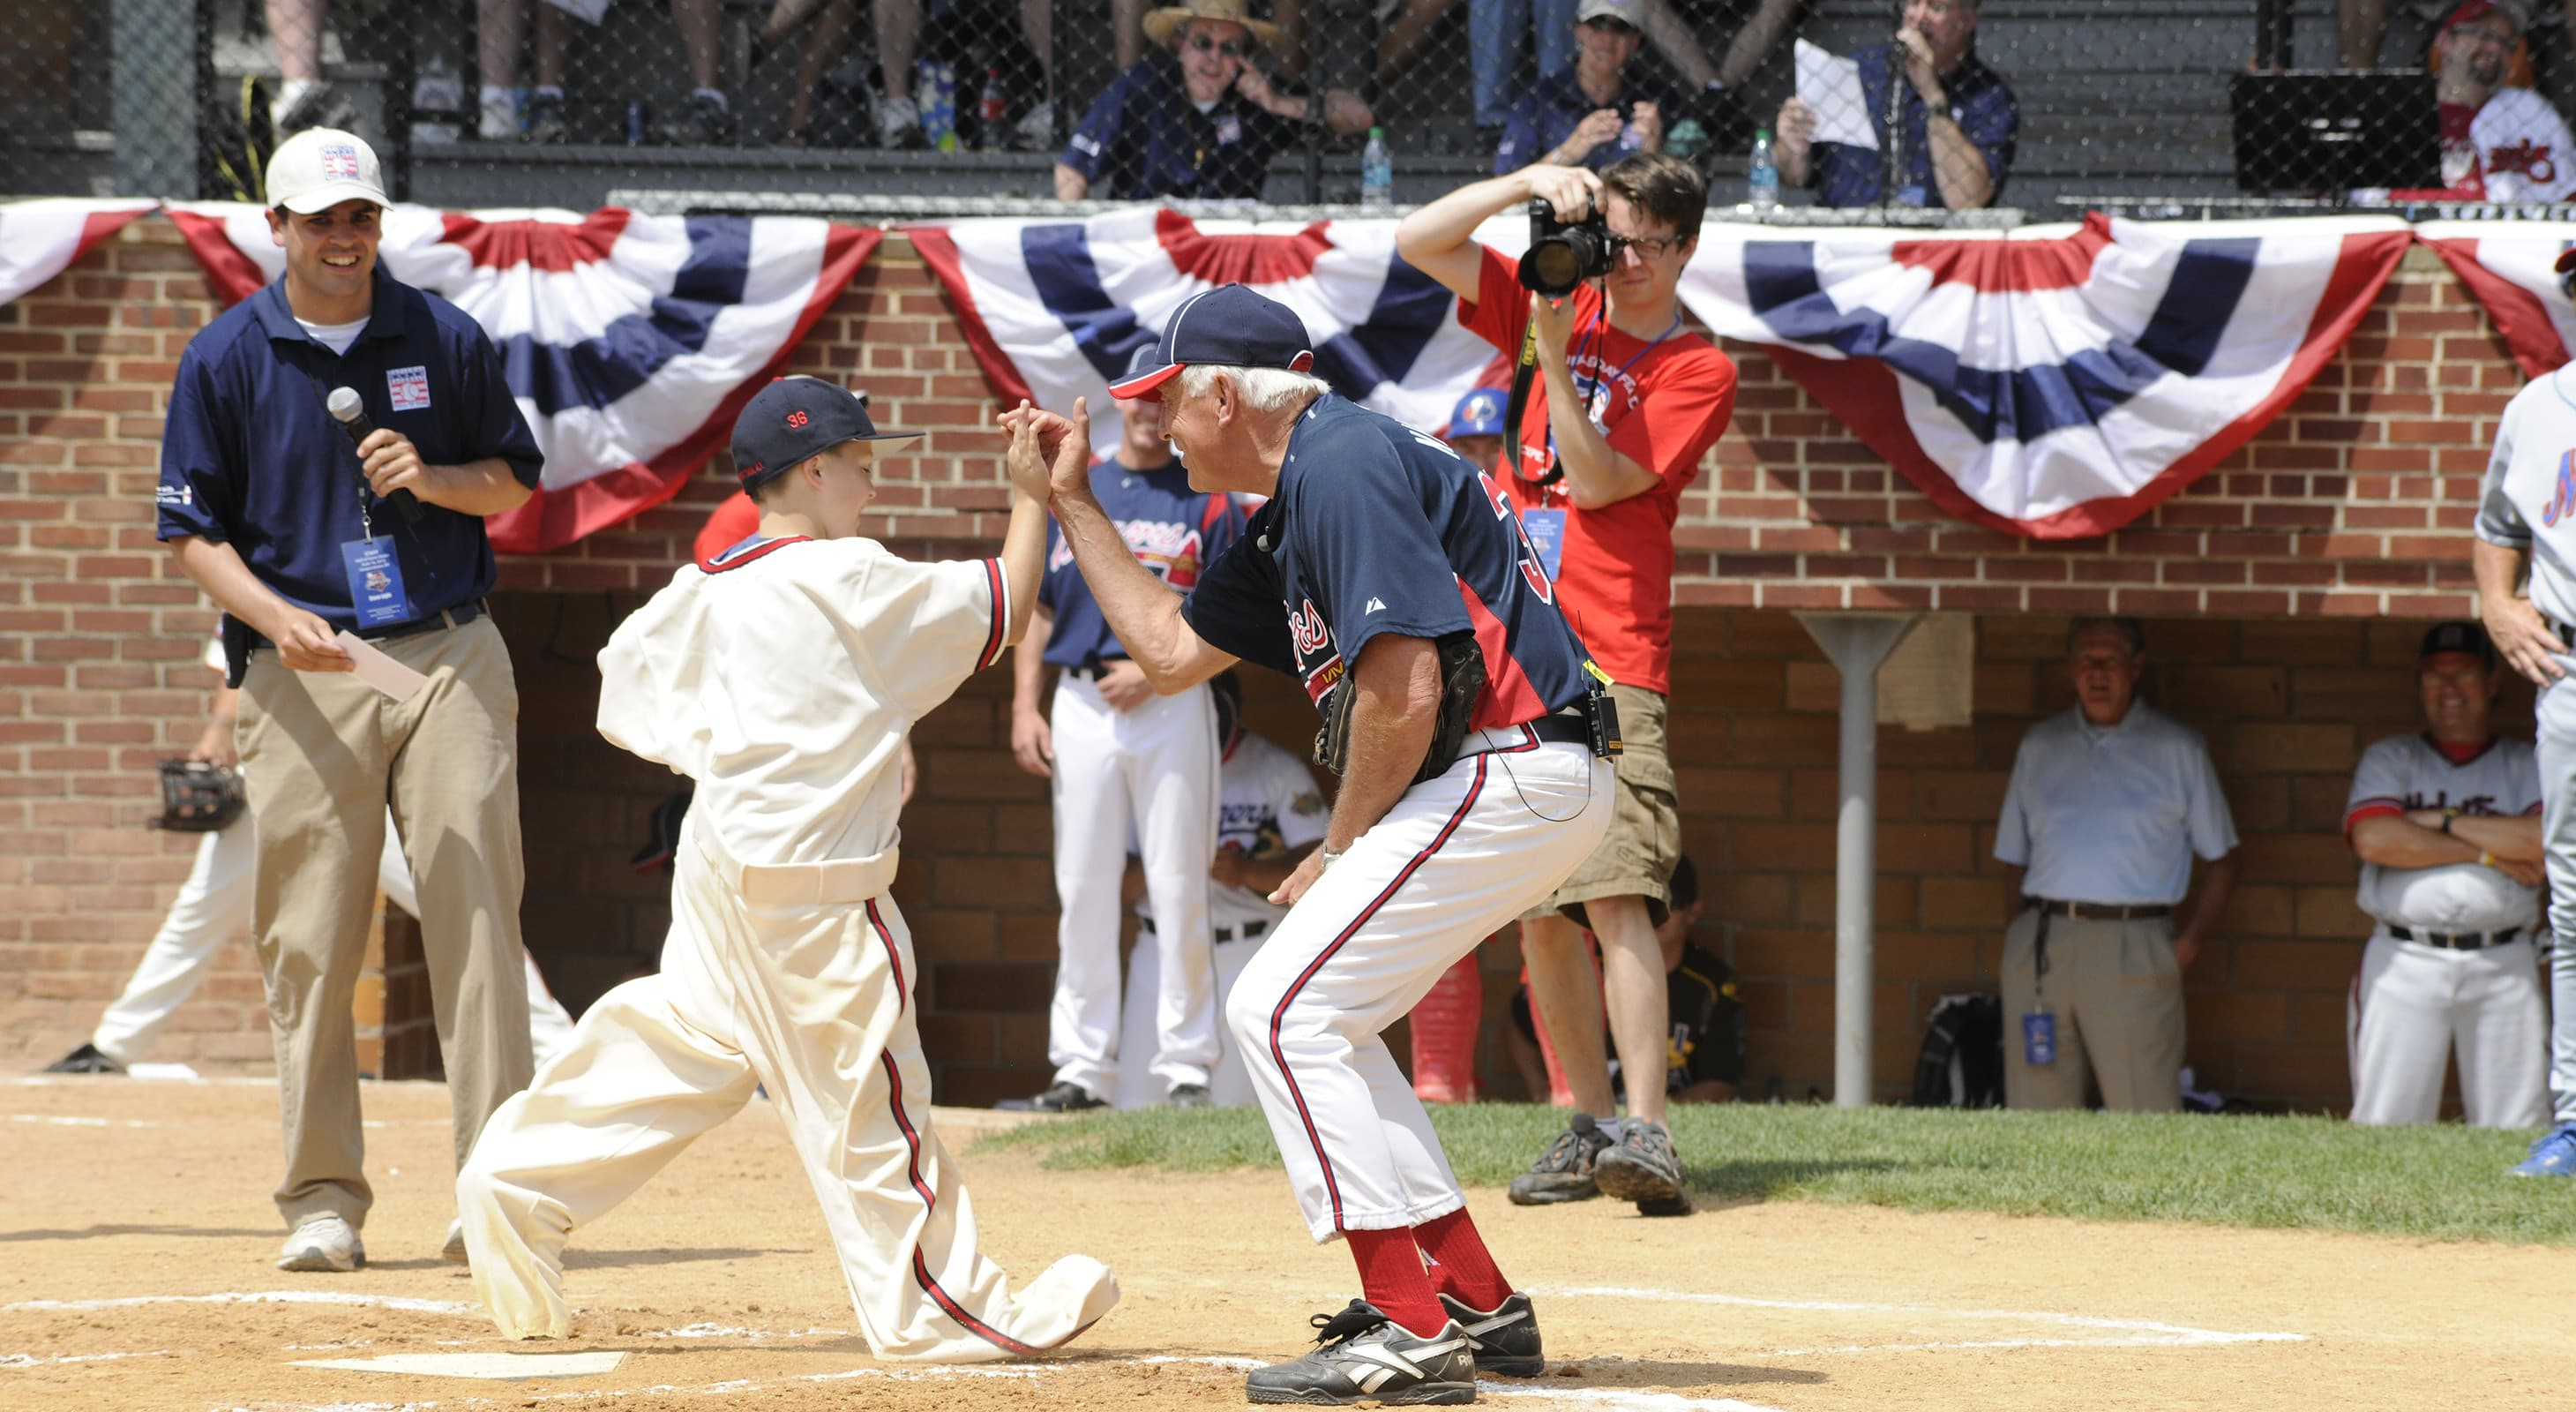 Man high-five a kid running to home plate on a baseball field in Cooperstown, NY